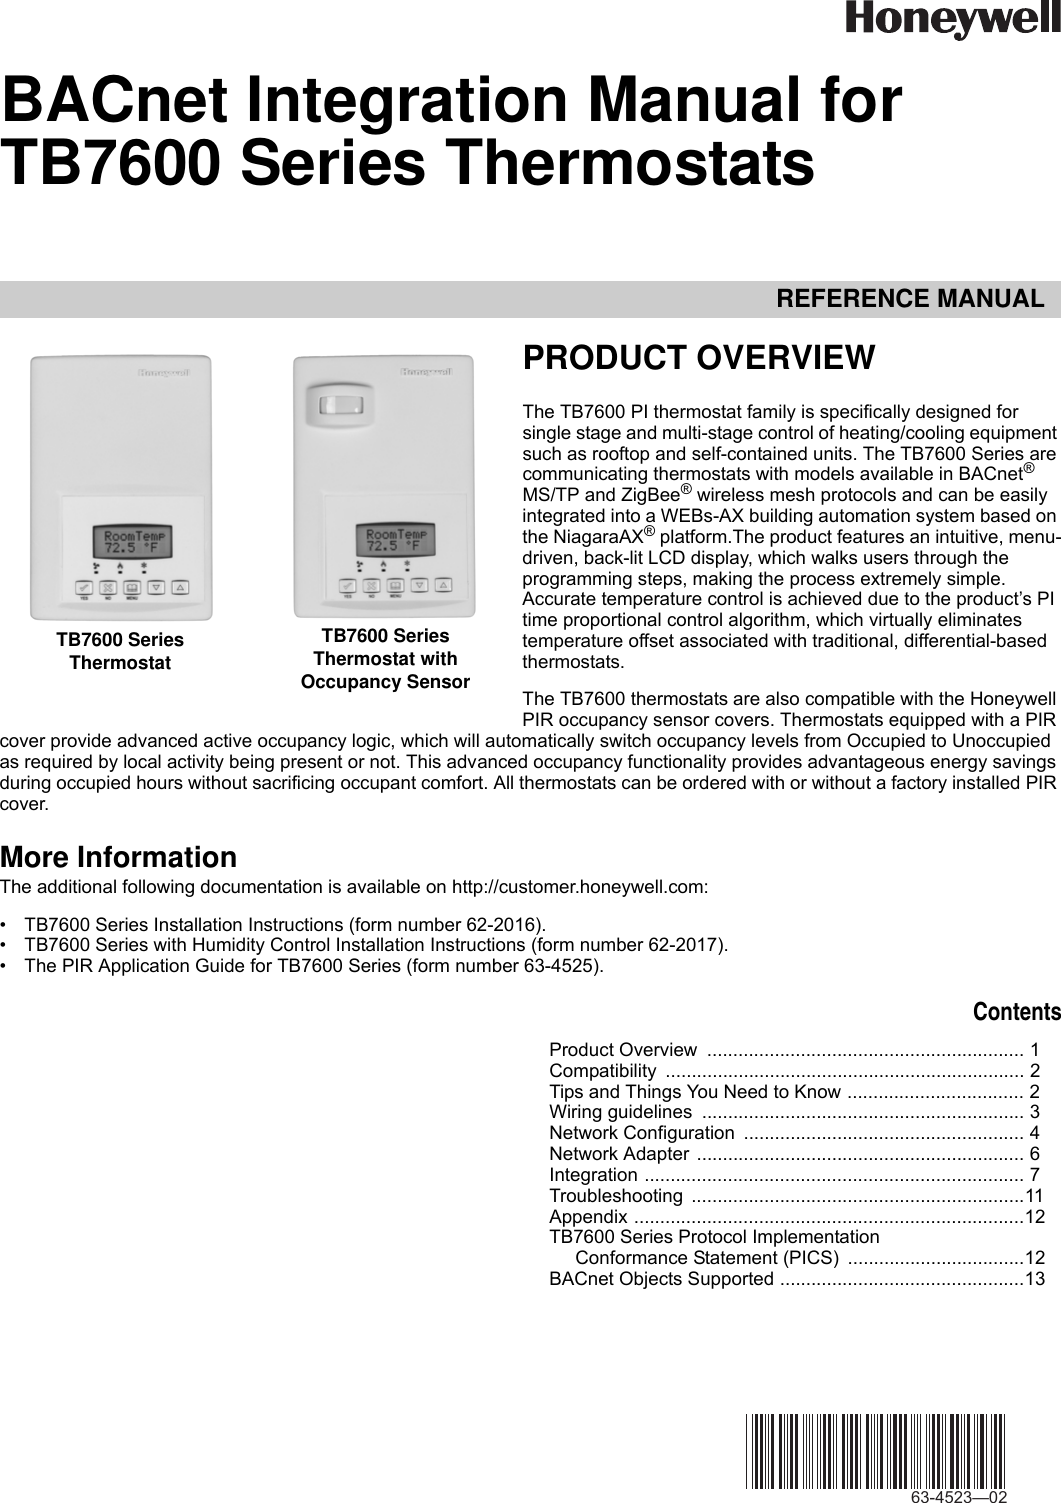 Honeywell Tb7600 Users Manual 63 4523—02 BACnet Integration For ...